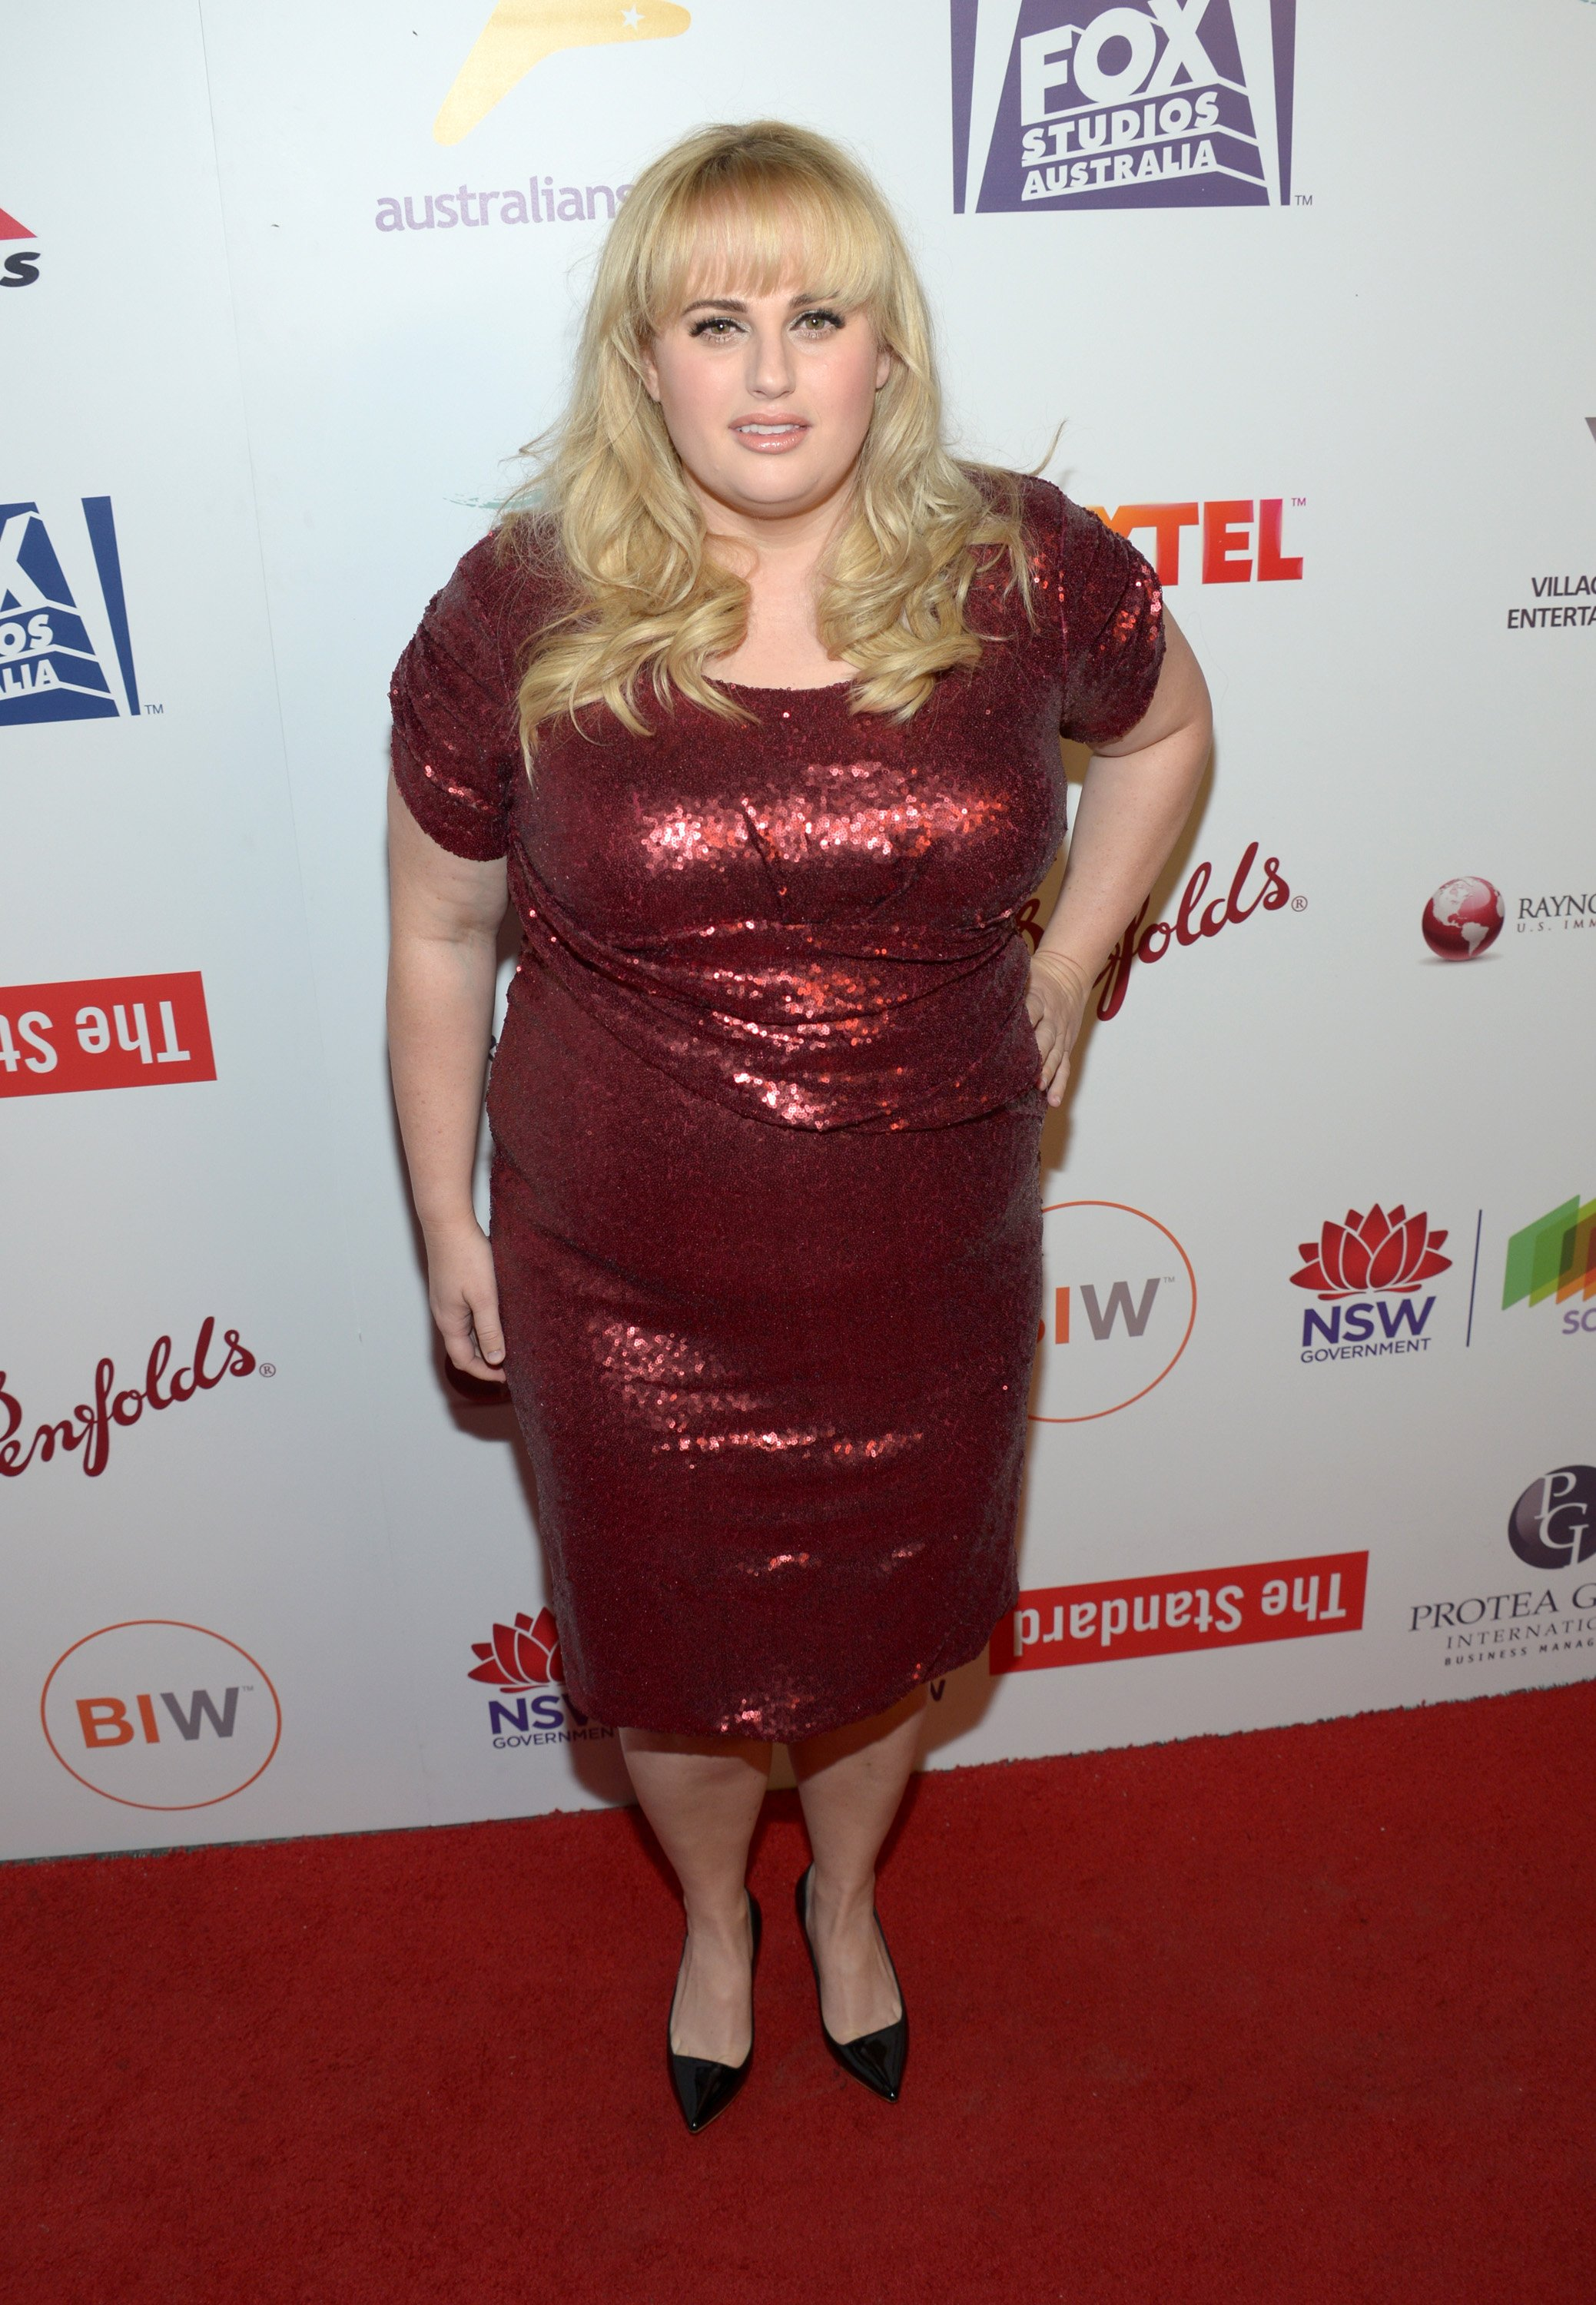 Rebel Wilson attends Australians In Film's 5th Annual Awards Gala at NeueHouse Hollywood on October 19, 2016 in Los Angeles